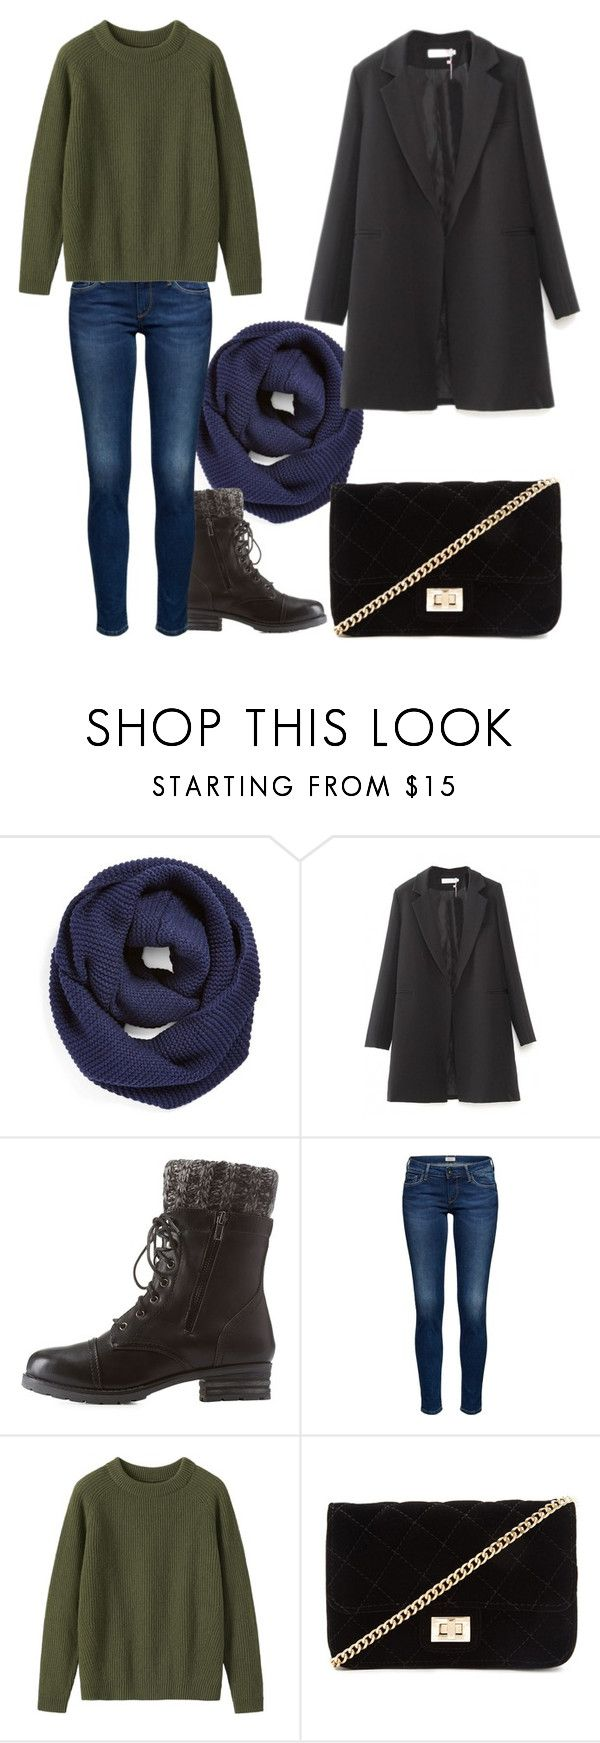 """""""Outwear#63"""" by elusiin ❤ liked on Polyvore featuring BP., WithChic, Charlotte Russe, Toast and Forever 21"""